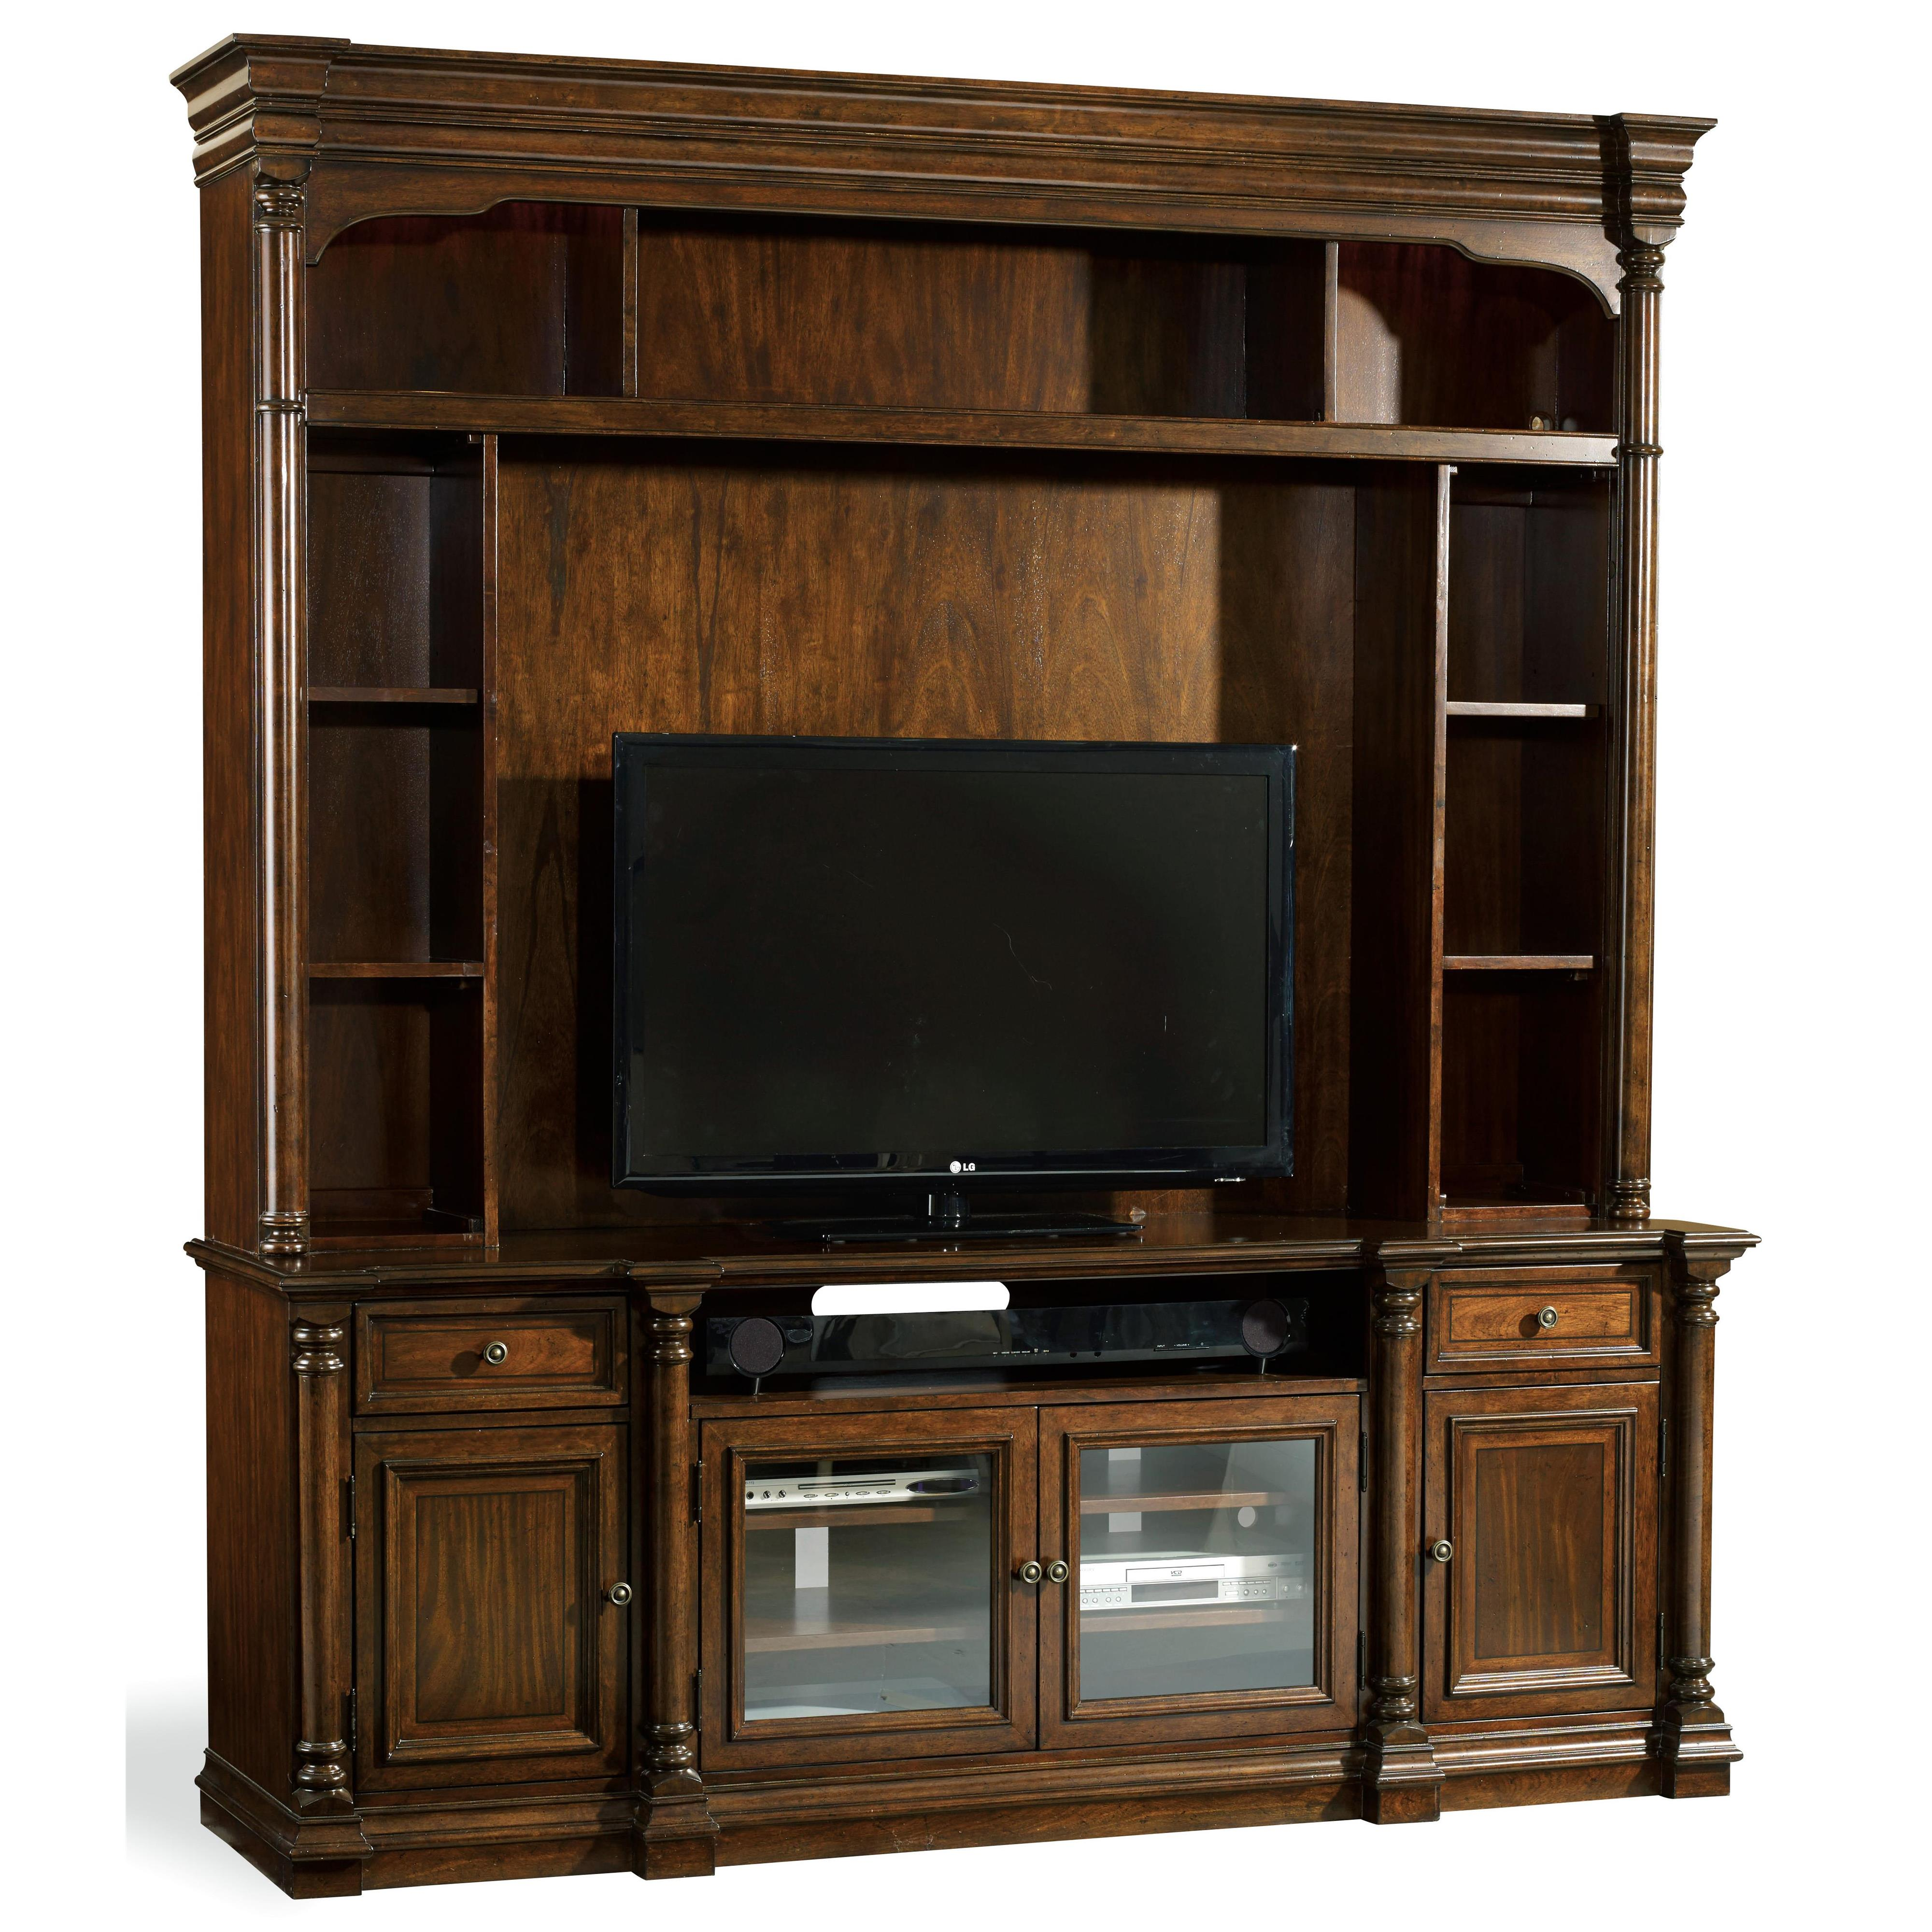 Home Entertainment Spaces: Hooker Furniture Leesburg Entertainment Console With Center Speaker Space